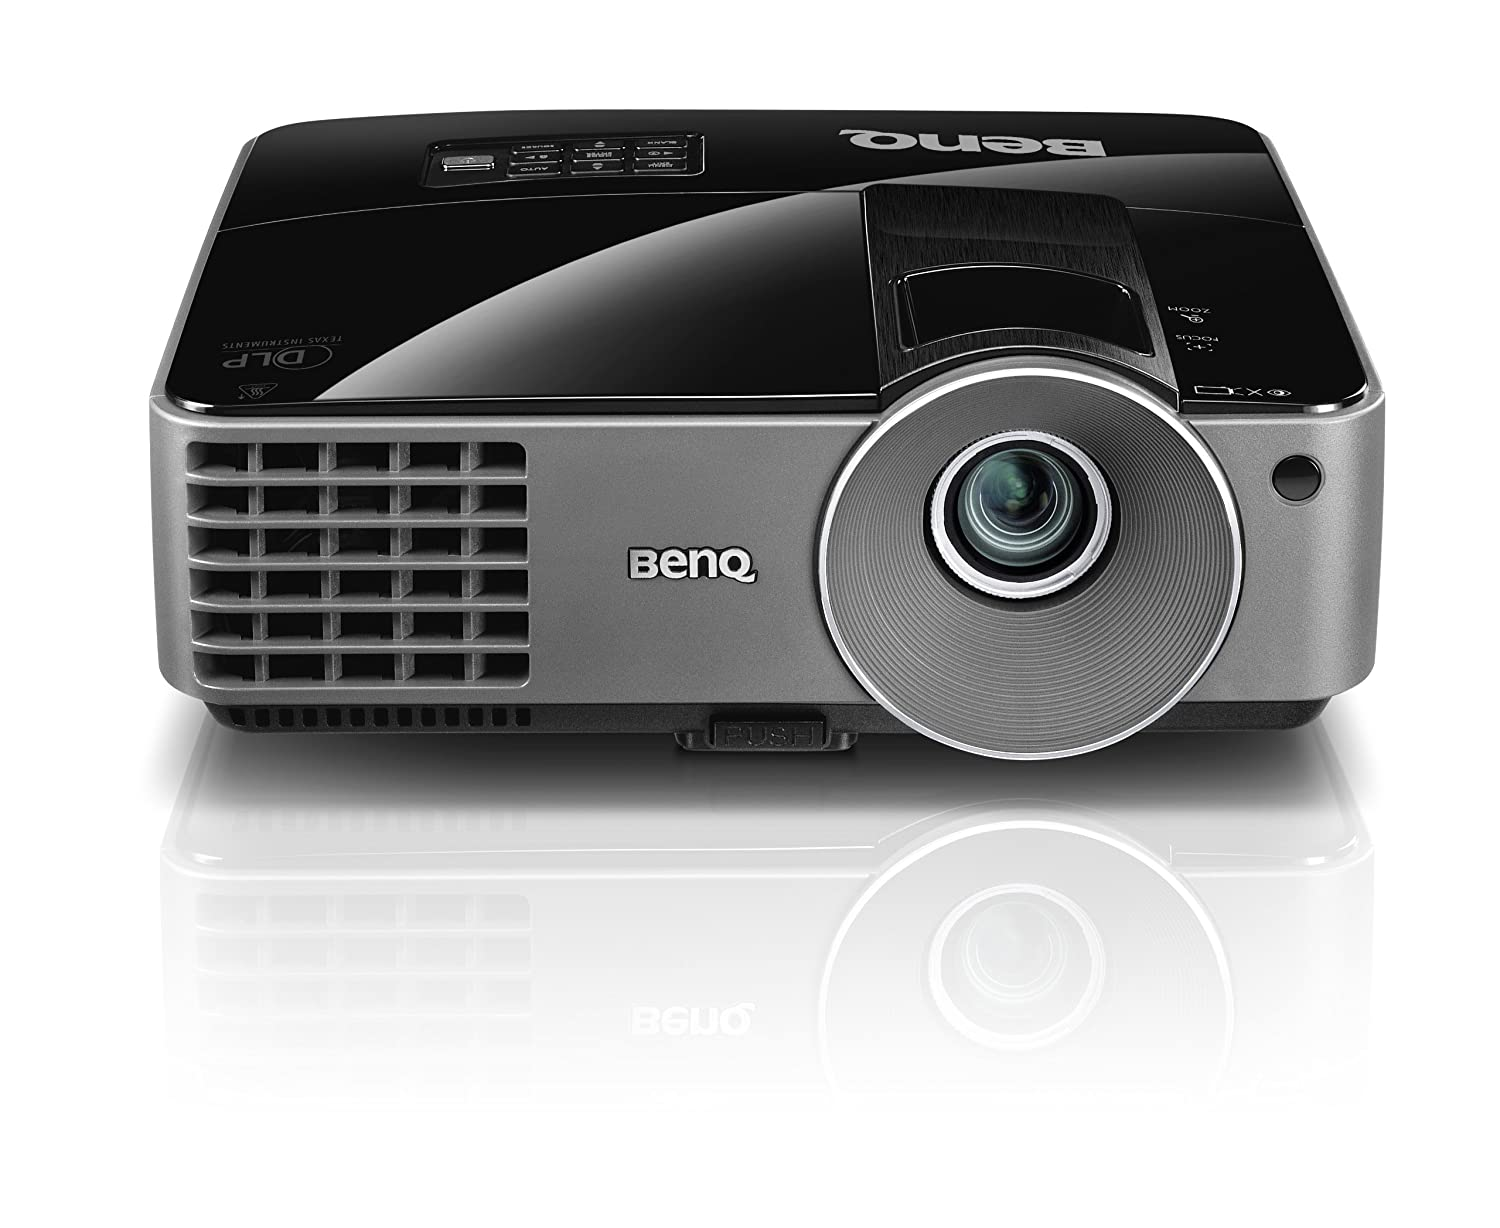 BenQ MS500+ - Proyector, 2700 lumens, 4000:1, SVGA 800x600, color ...